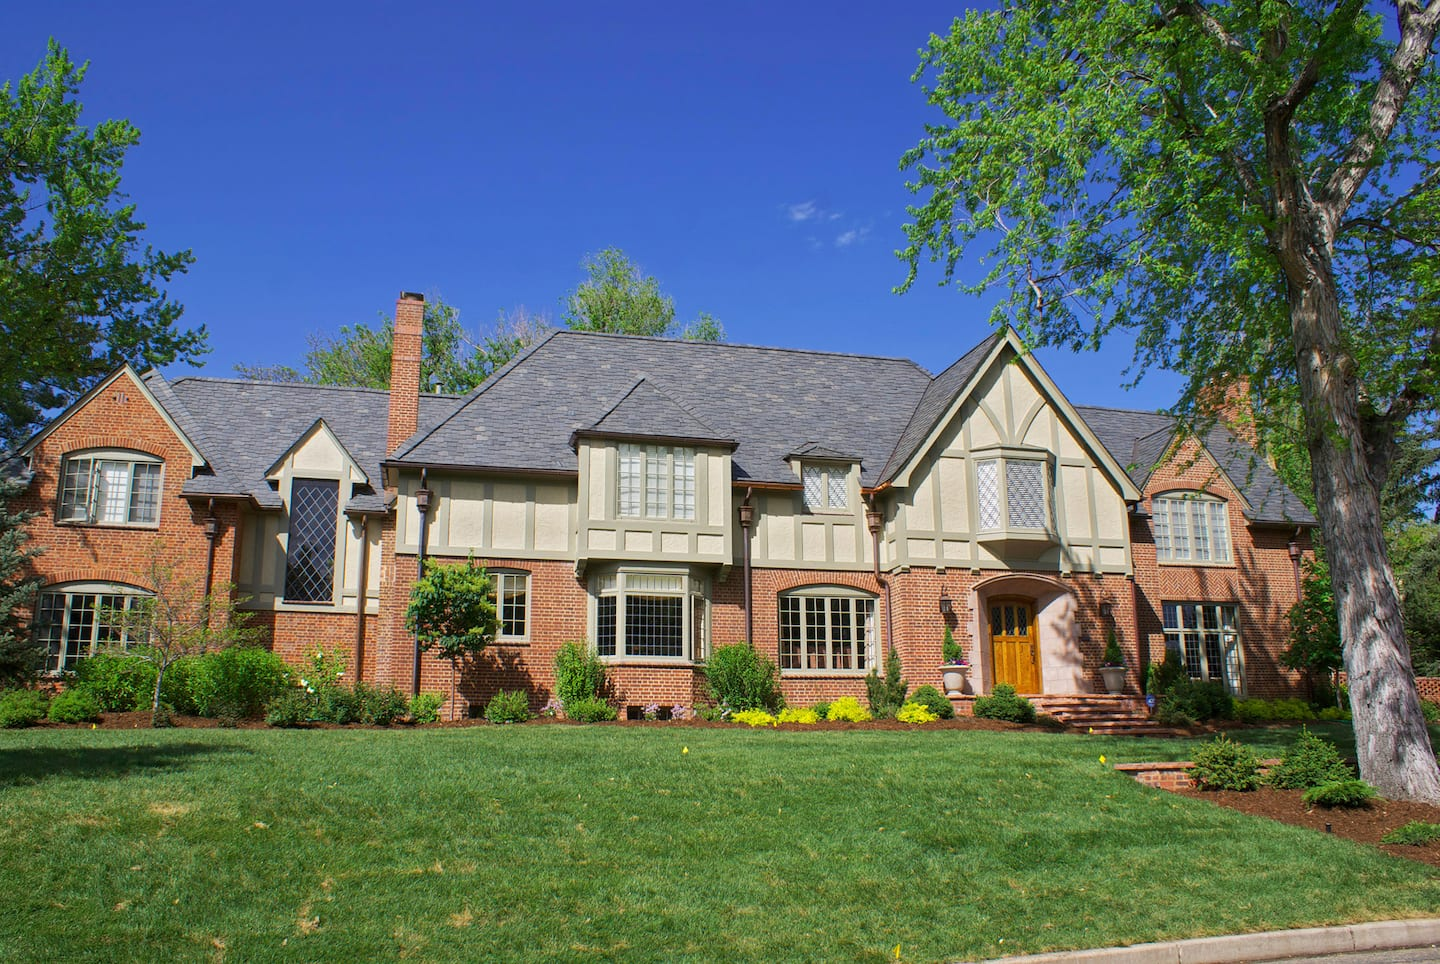 Uncategorized Ranch Home Styles what is a ranch style home angies list tudor home